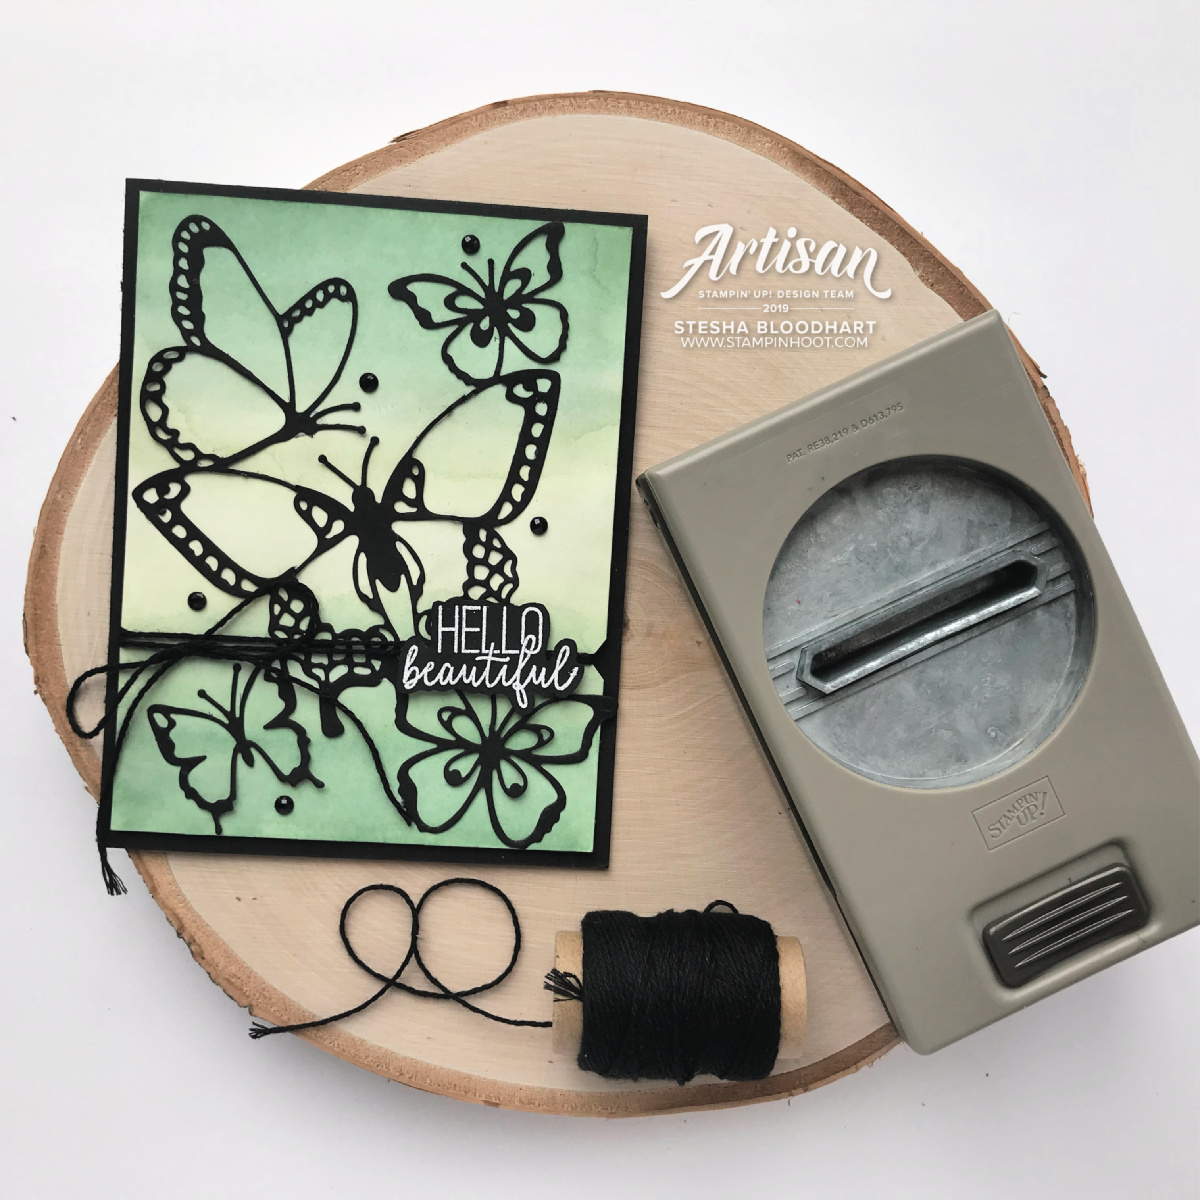 "From #ArtisanDesignTeam member Stesha Bloodhart (@stampinhoot): ""Utilize various Stampin' Up! Punches to create artistic notches to hold Baker's Twine, Linen Thread, and thin ribbon securely in place. The Daisy and Classic Label Punch are just two of the many options available. Think outside the box and the possibilities are endless."" Stesha Bloodhart, Stampin' Hoot!"